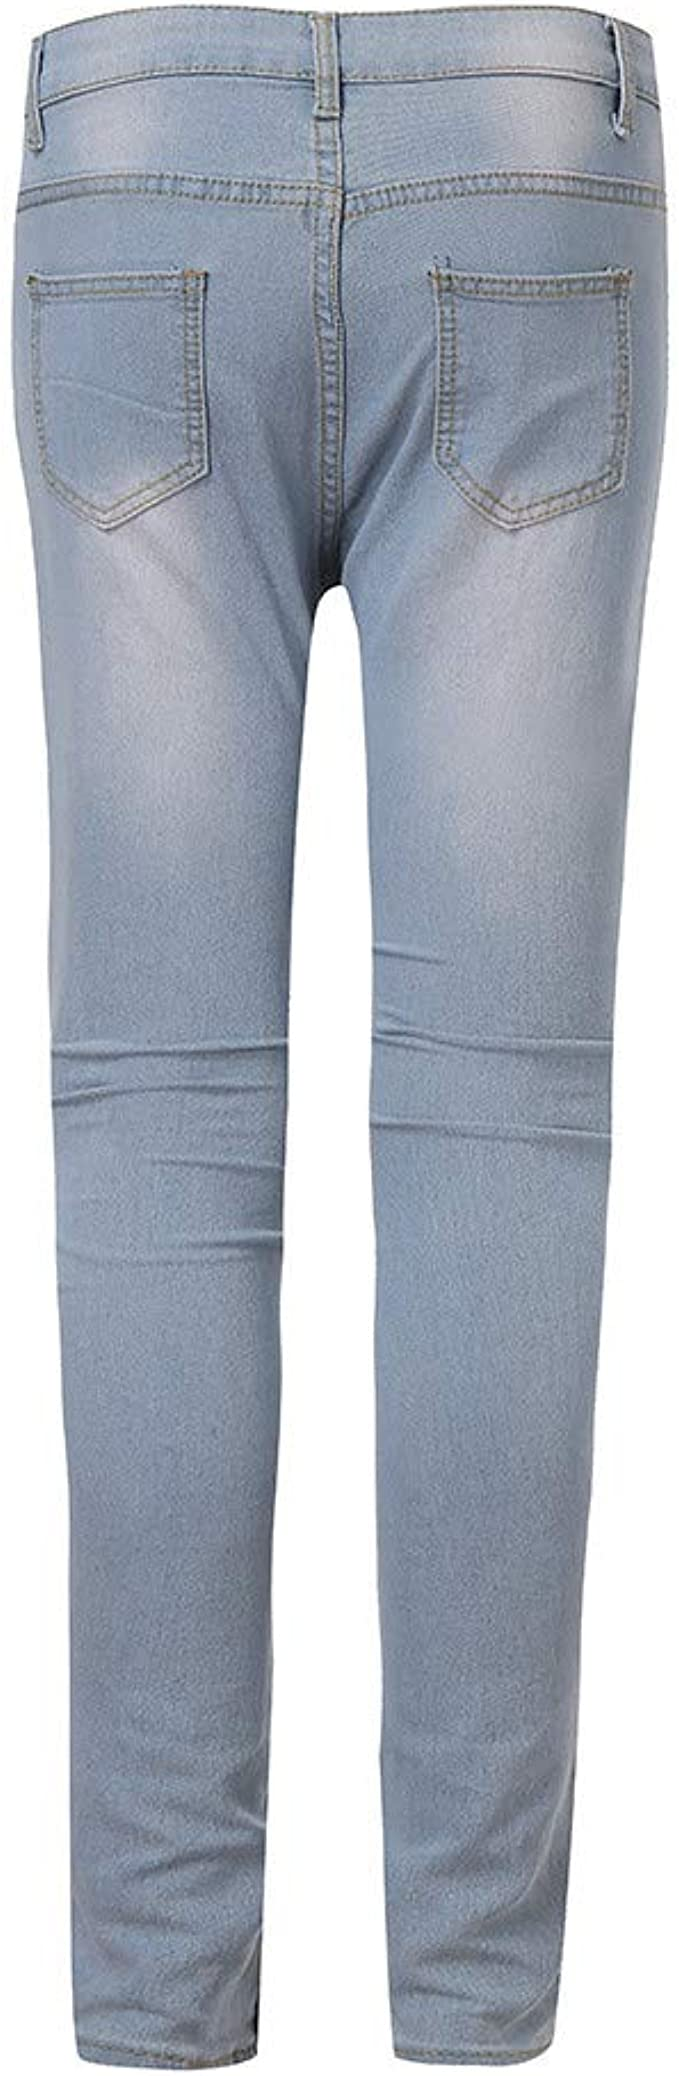 S 10 Types L M MISM Jeggings for Women Pull-On Denim Printed Skinny Stretch Jean Leggings Tights for Summer